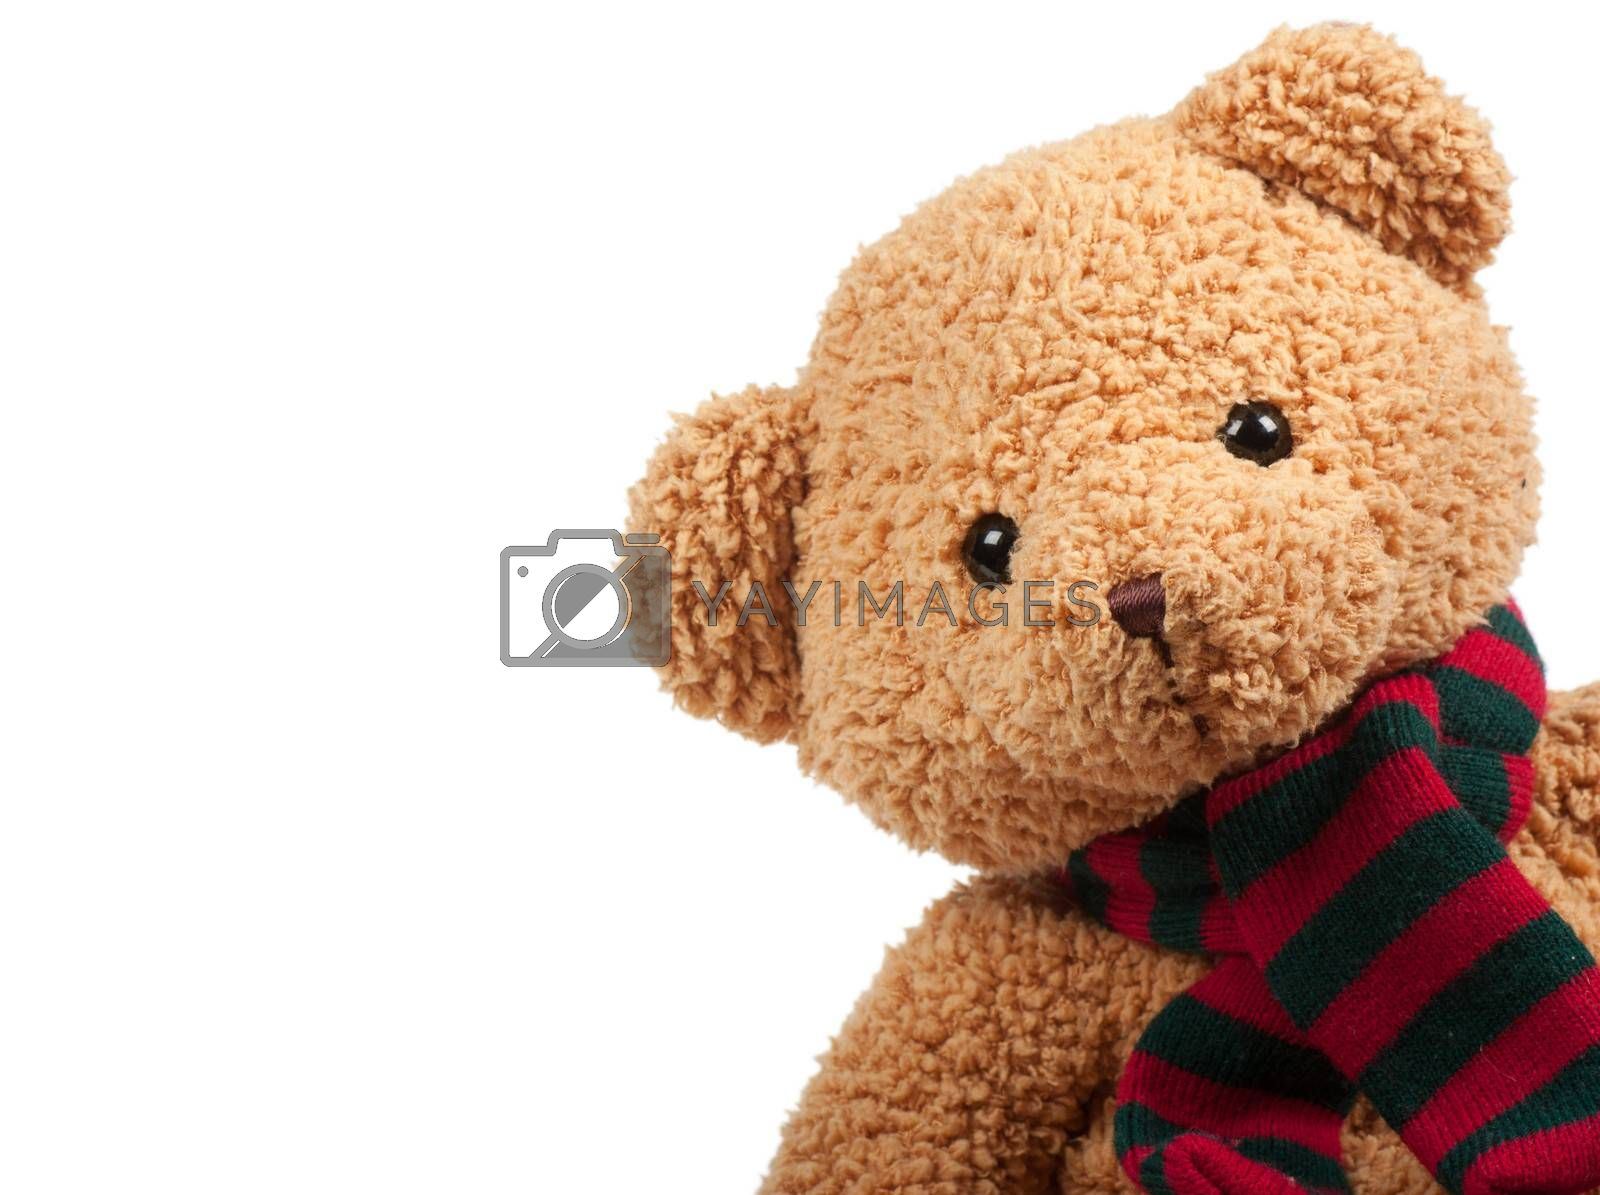 Fluffy teddy bear over the white background